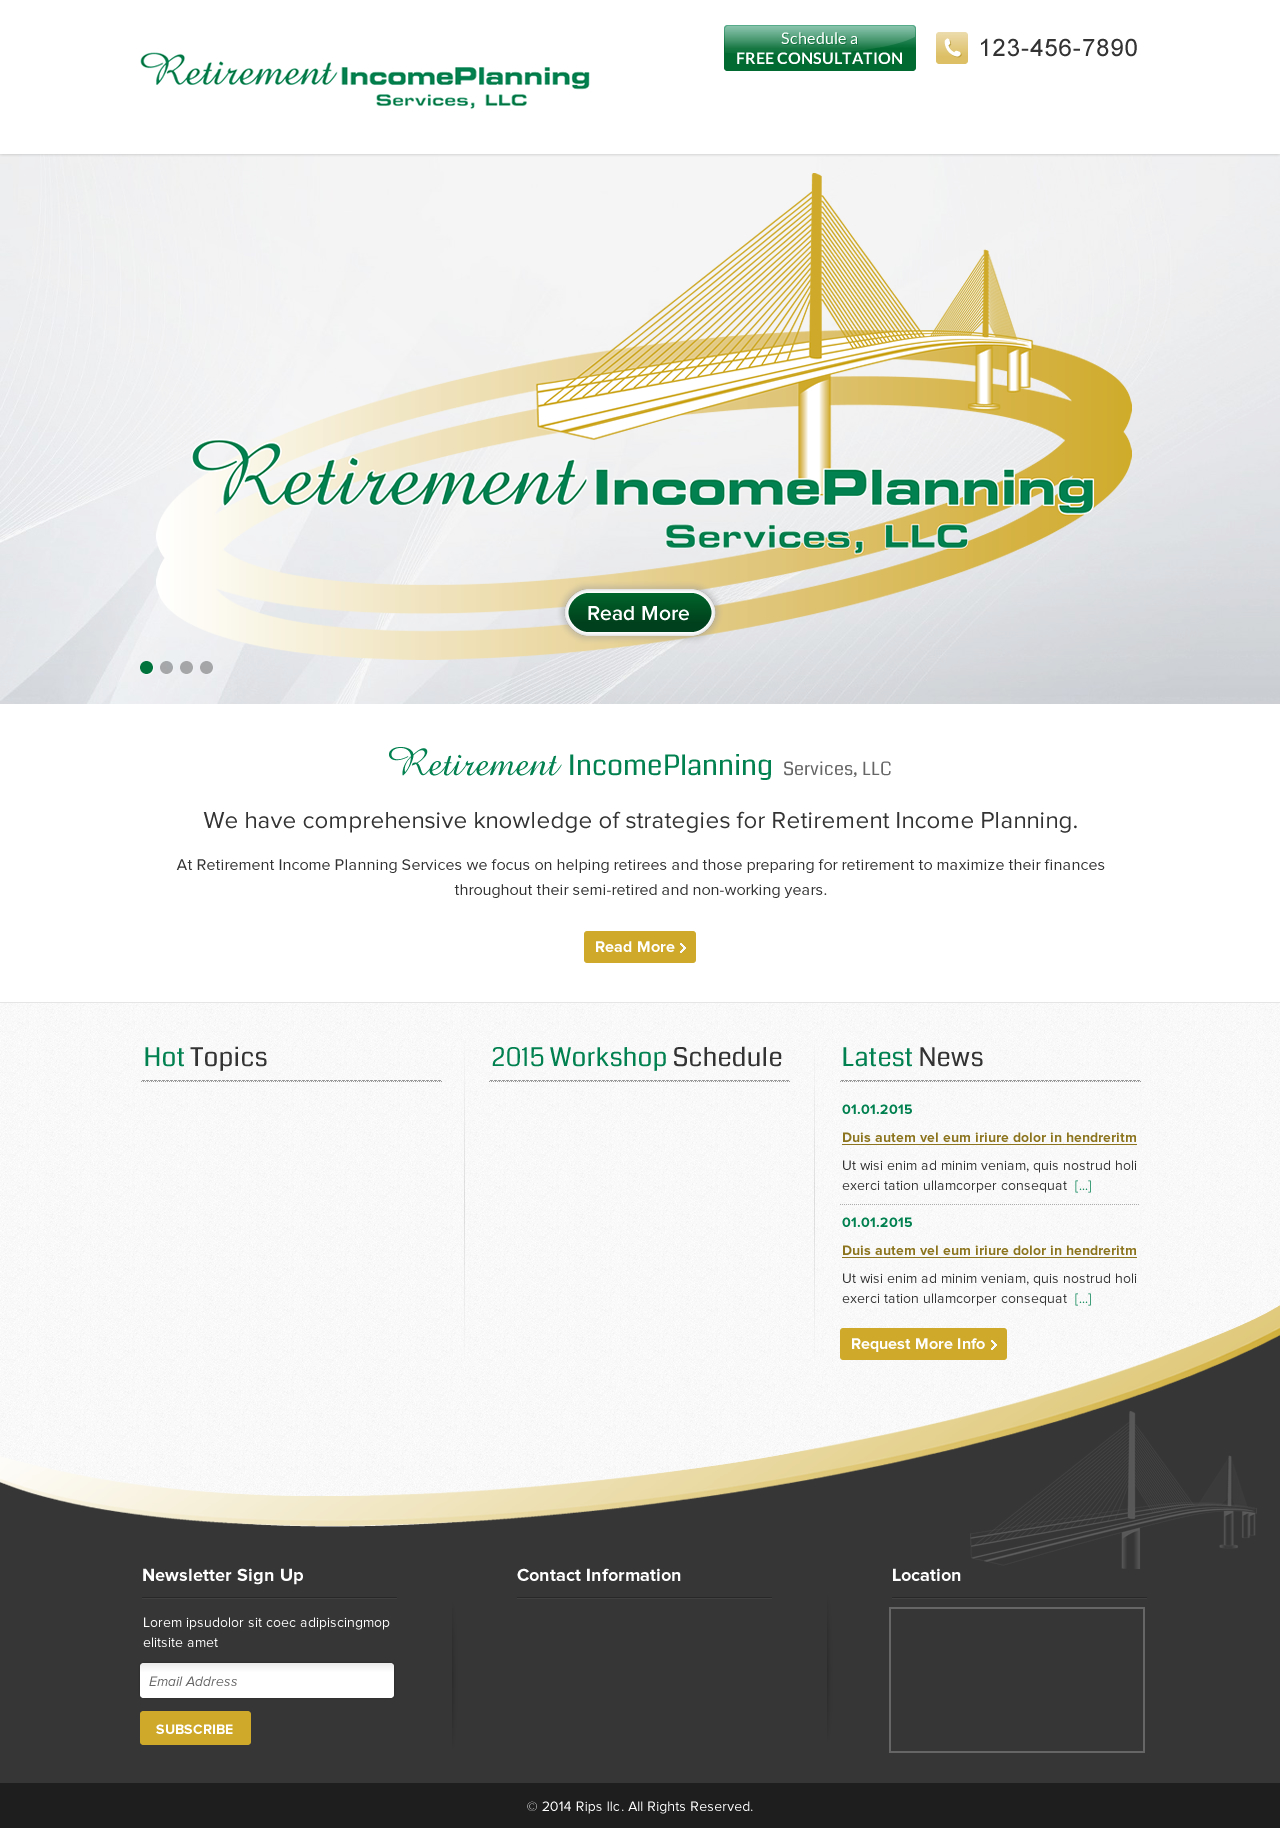 Retirement Income Planning - Financial Services